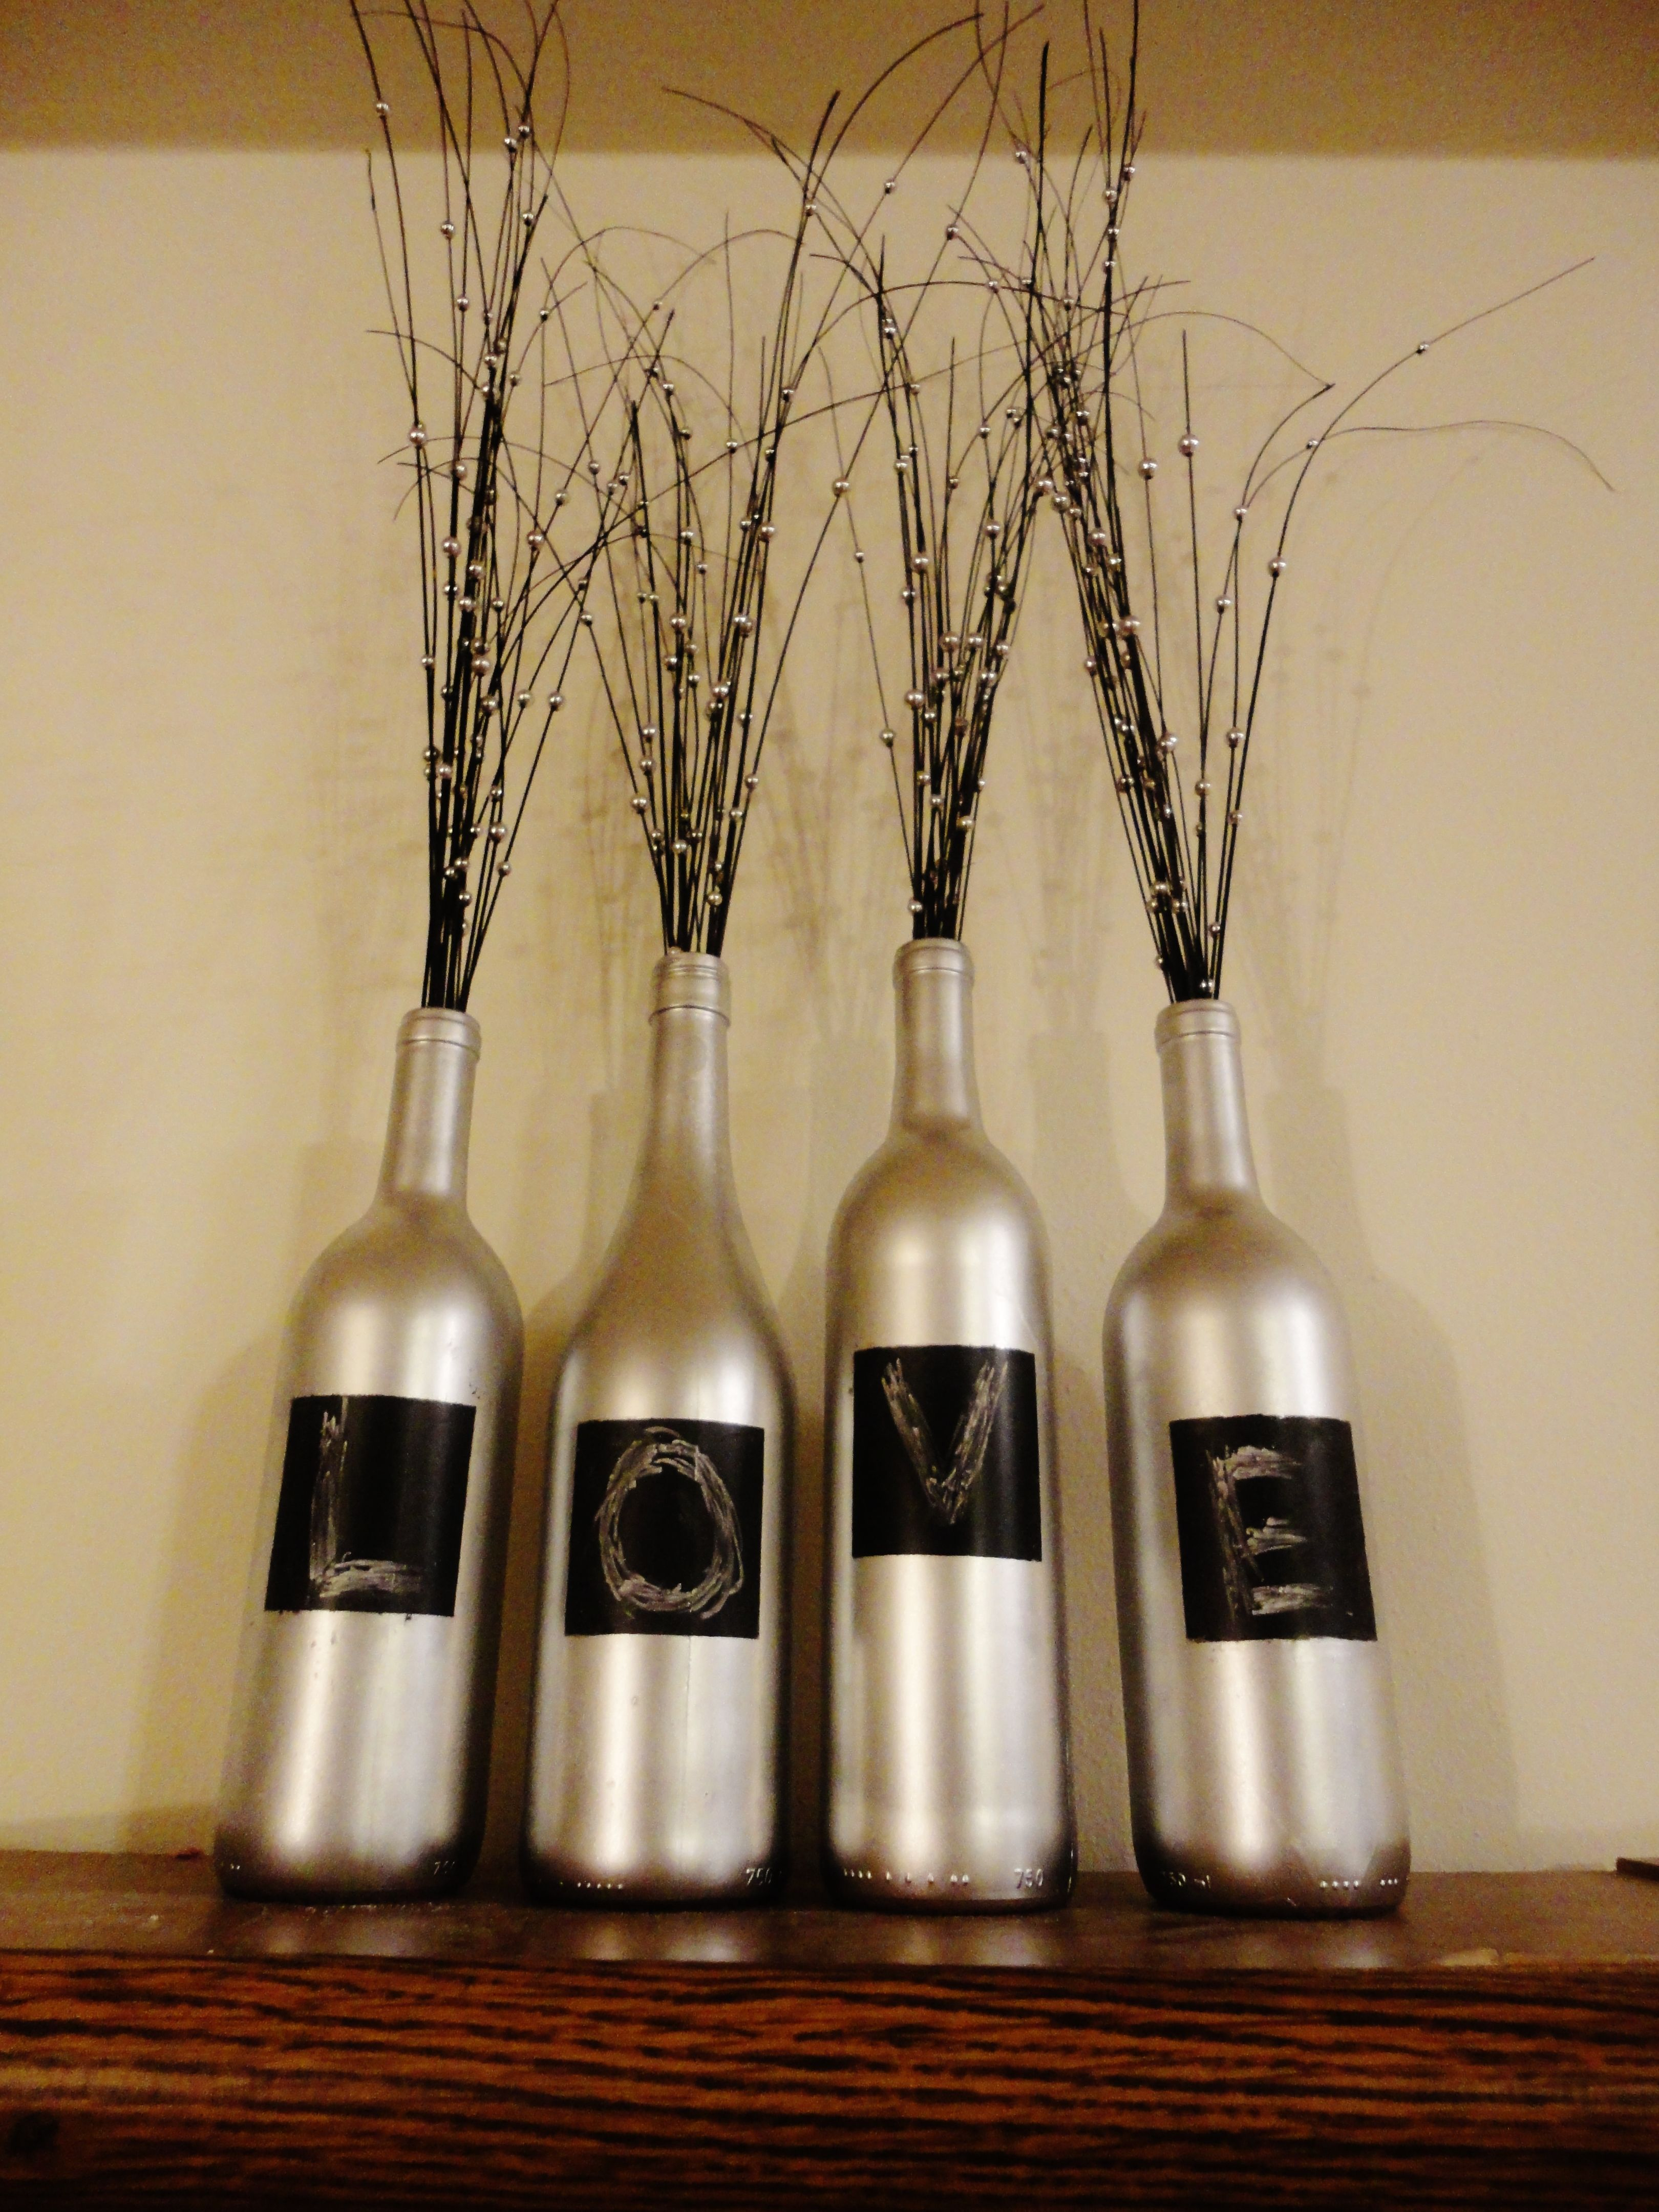 Spray painted wine bottles with chalkboard paint squares. you can change the word whenever you want!